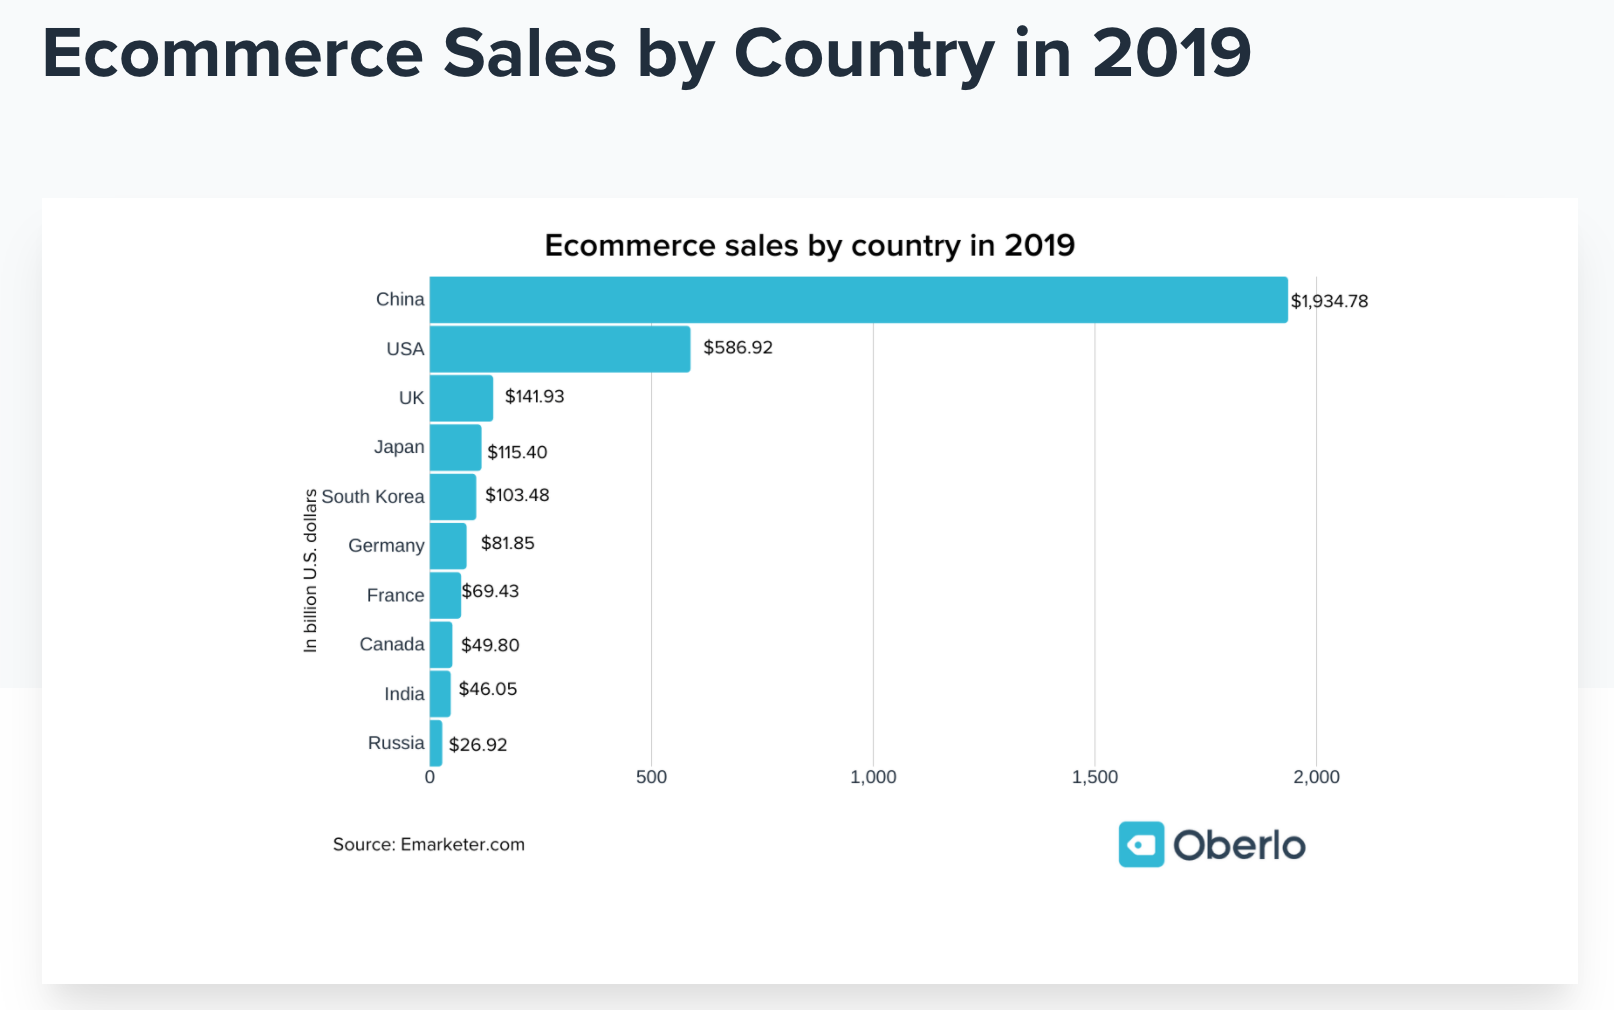 Statistics - Ecommerce Sales by Country in 2019